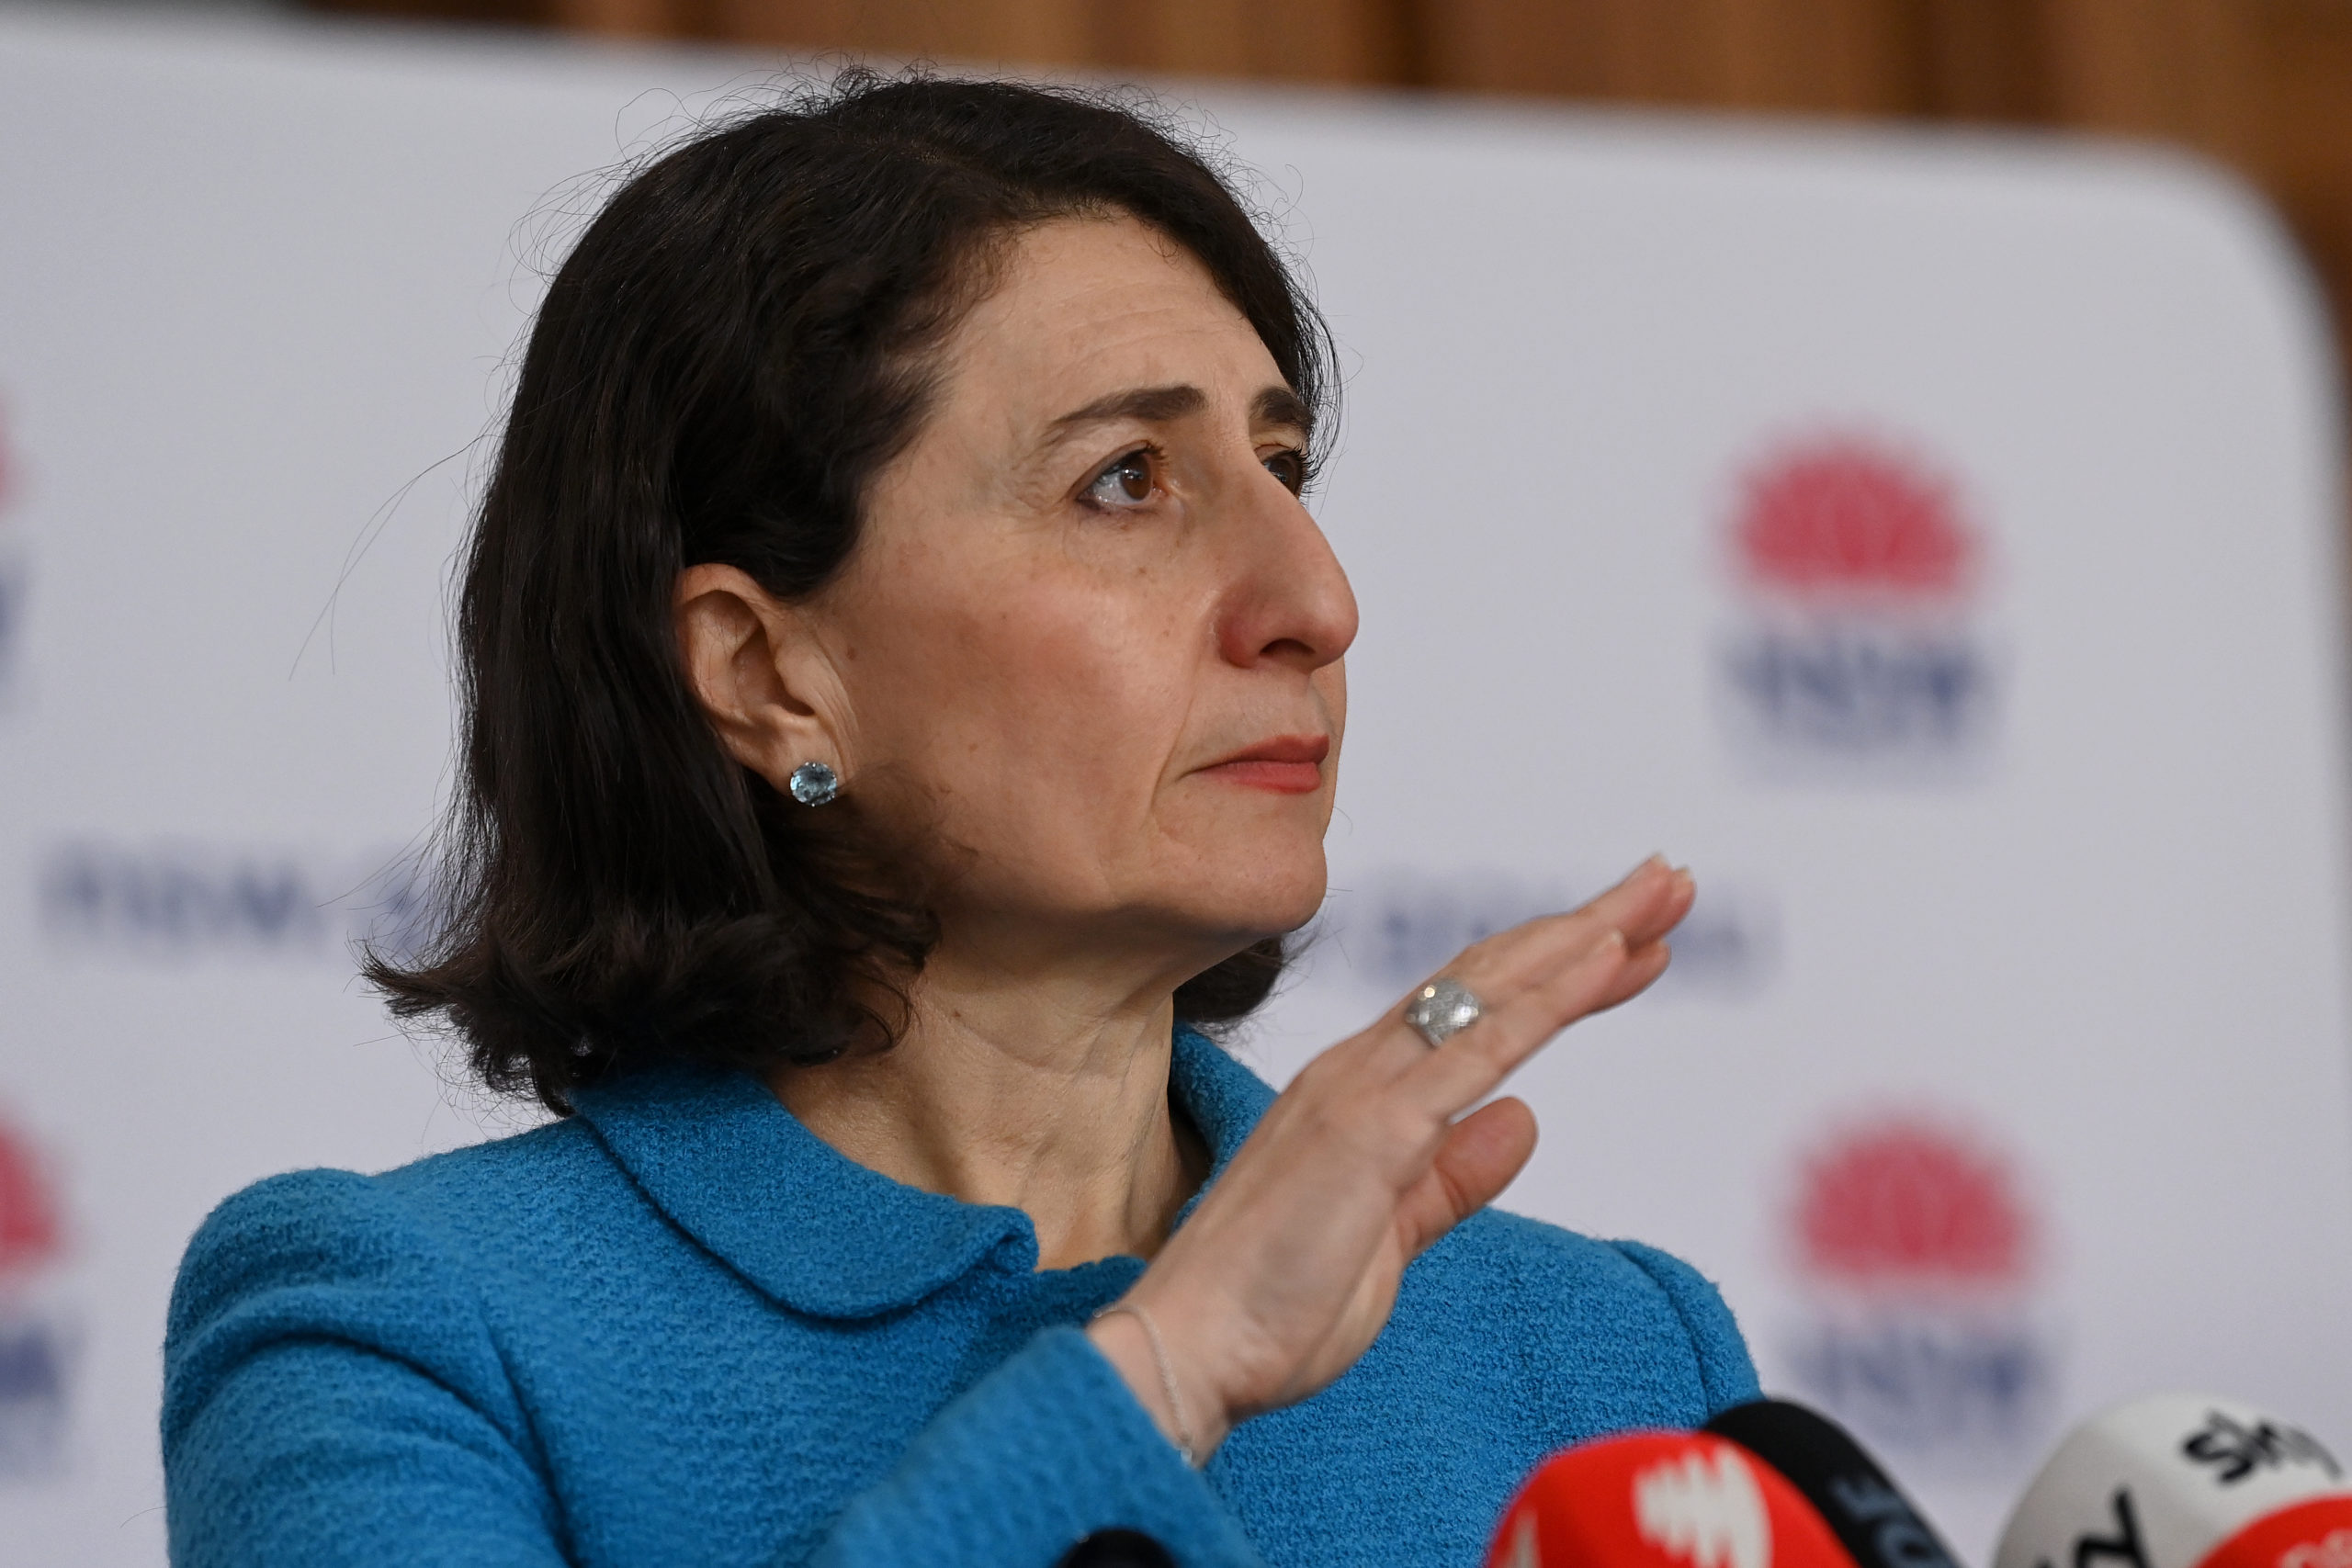 SYDNEY, AUSTRALIA - AUGUST 26: NSW Premier Gladys Berejiklian speaks to the media during a press conference to provide a COVID-19 update on August 26, 2021 in Sydney, Australia. NSW recorded 1029 new locally acquired cases of COVID-19 as the entire state continues in lockdown. (Photo by Bianca De Marchi - Pool/Getty Images)